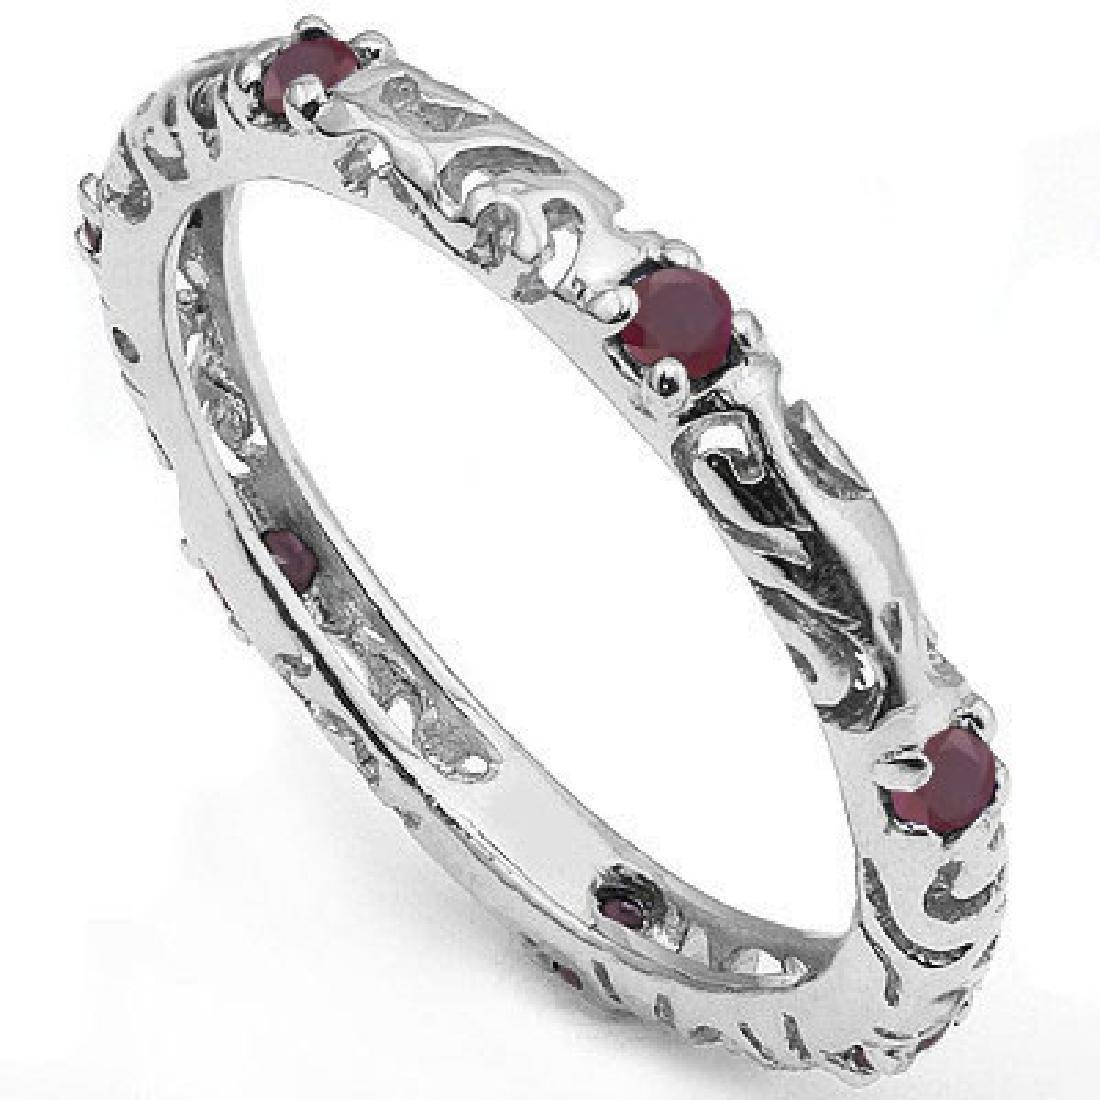 Genuine Rubies set in Platinum over Sterling Silver